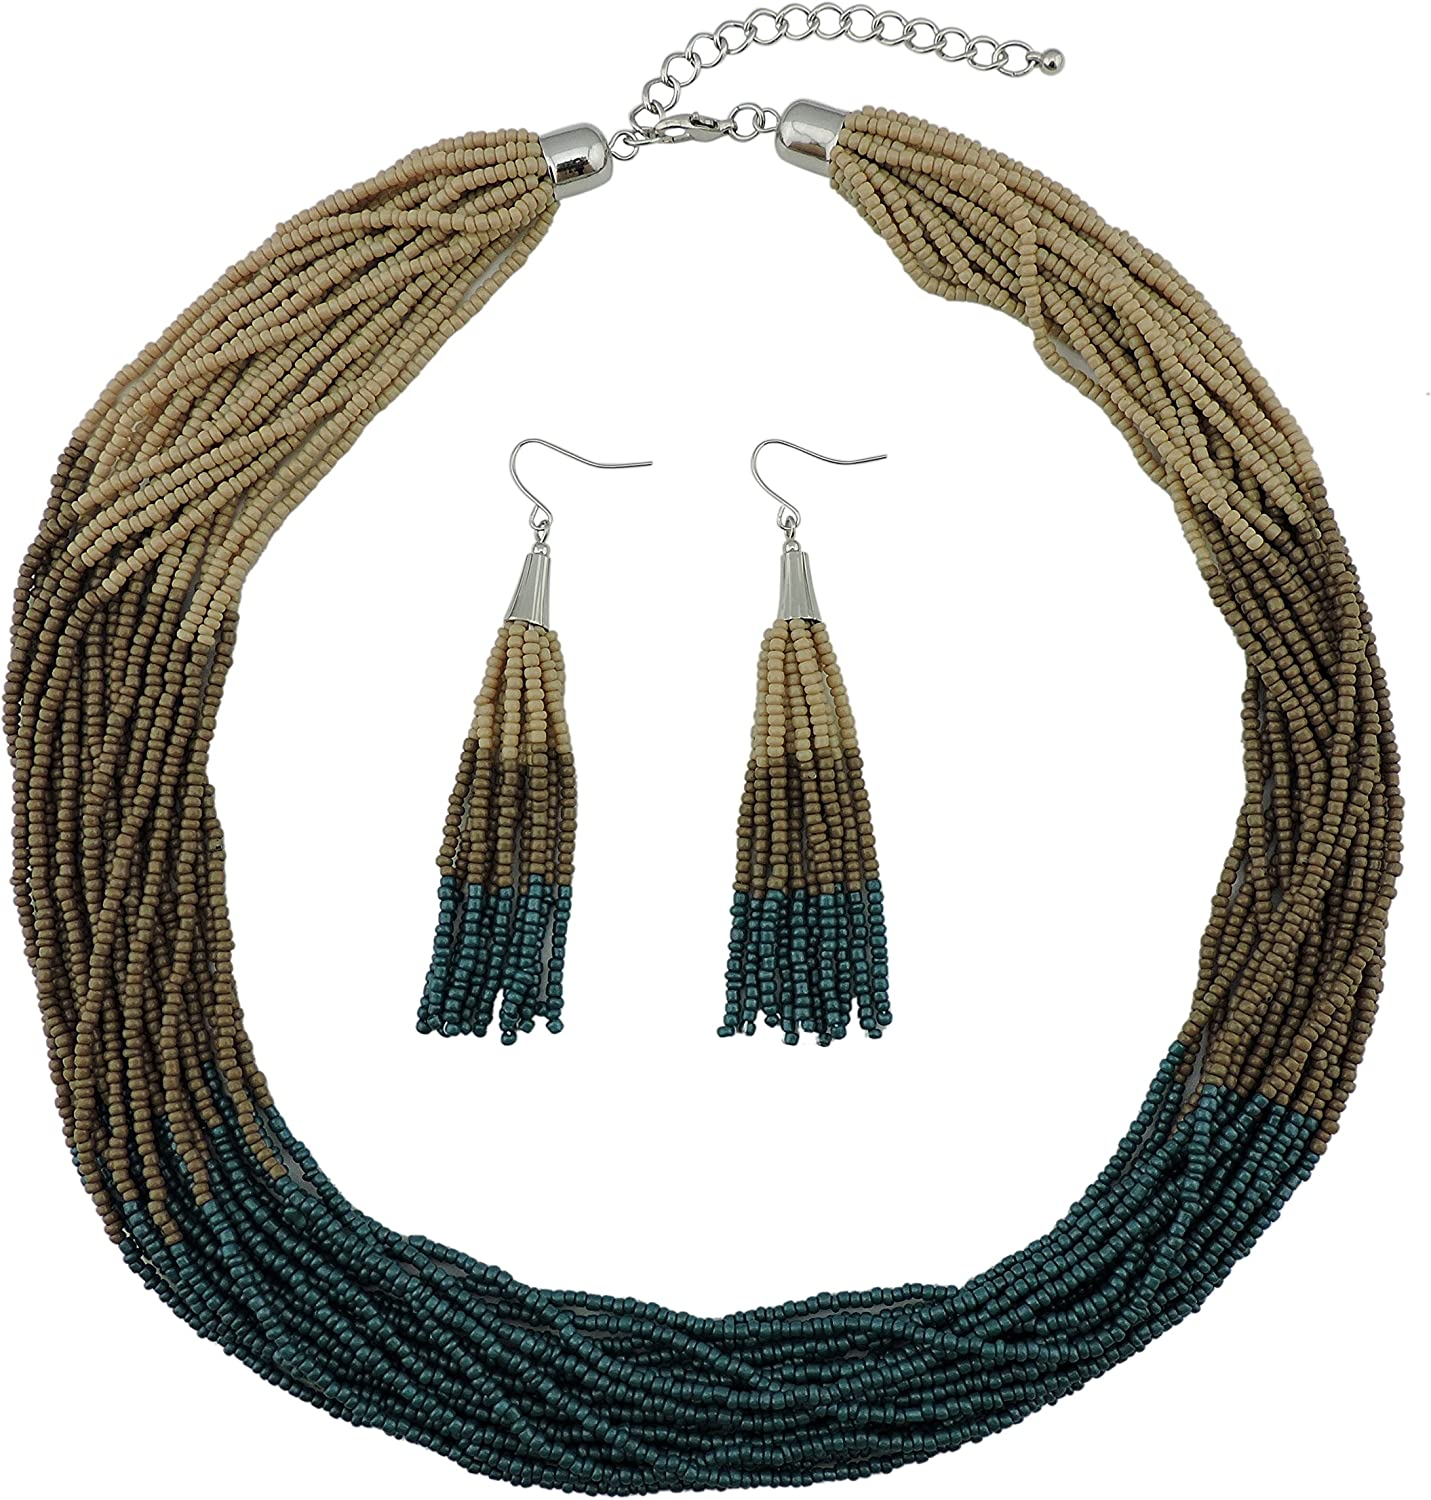 Bocar Multi Layer El Paso Mall Beaded Statement Strand Mix Necklace Set High quality new Neckl